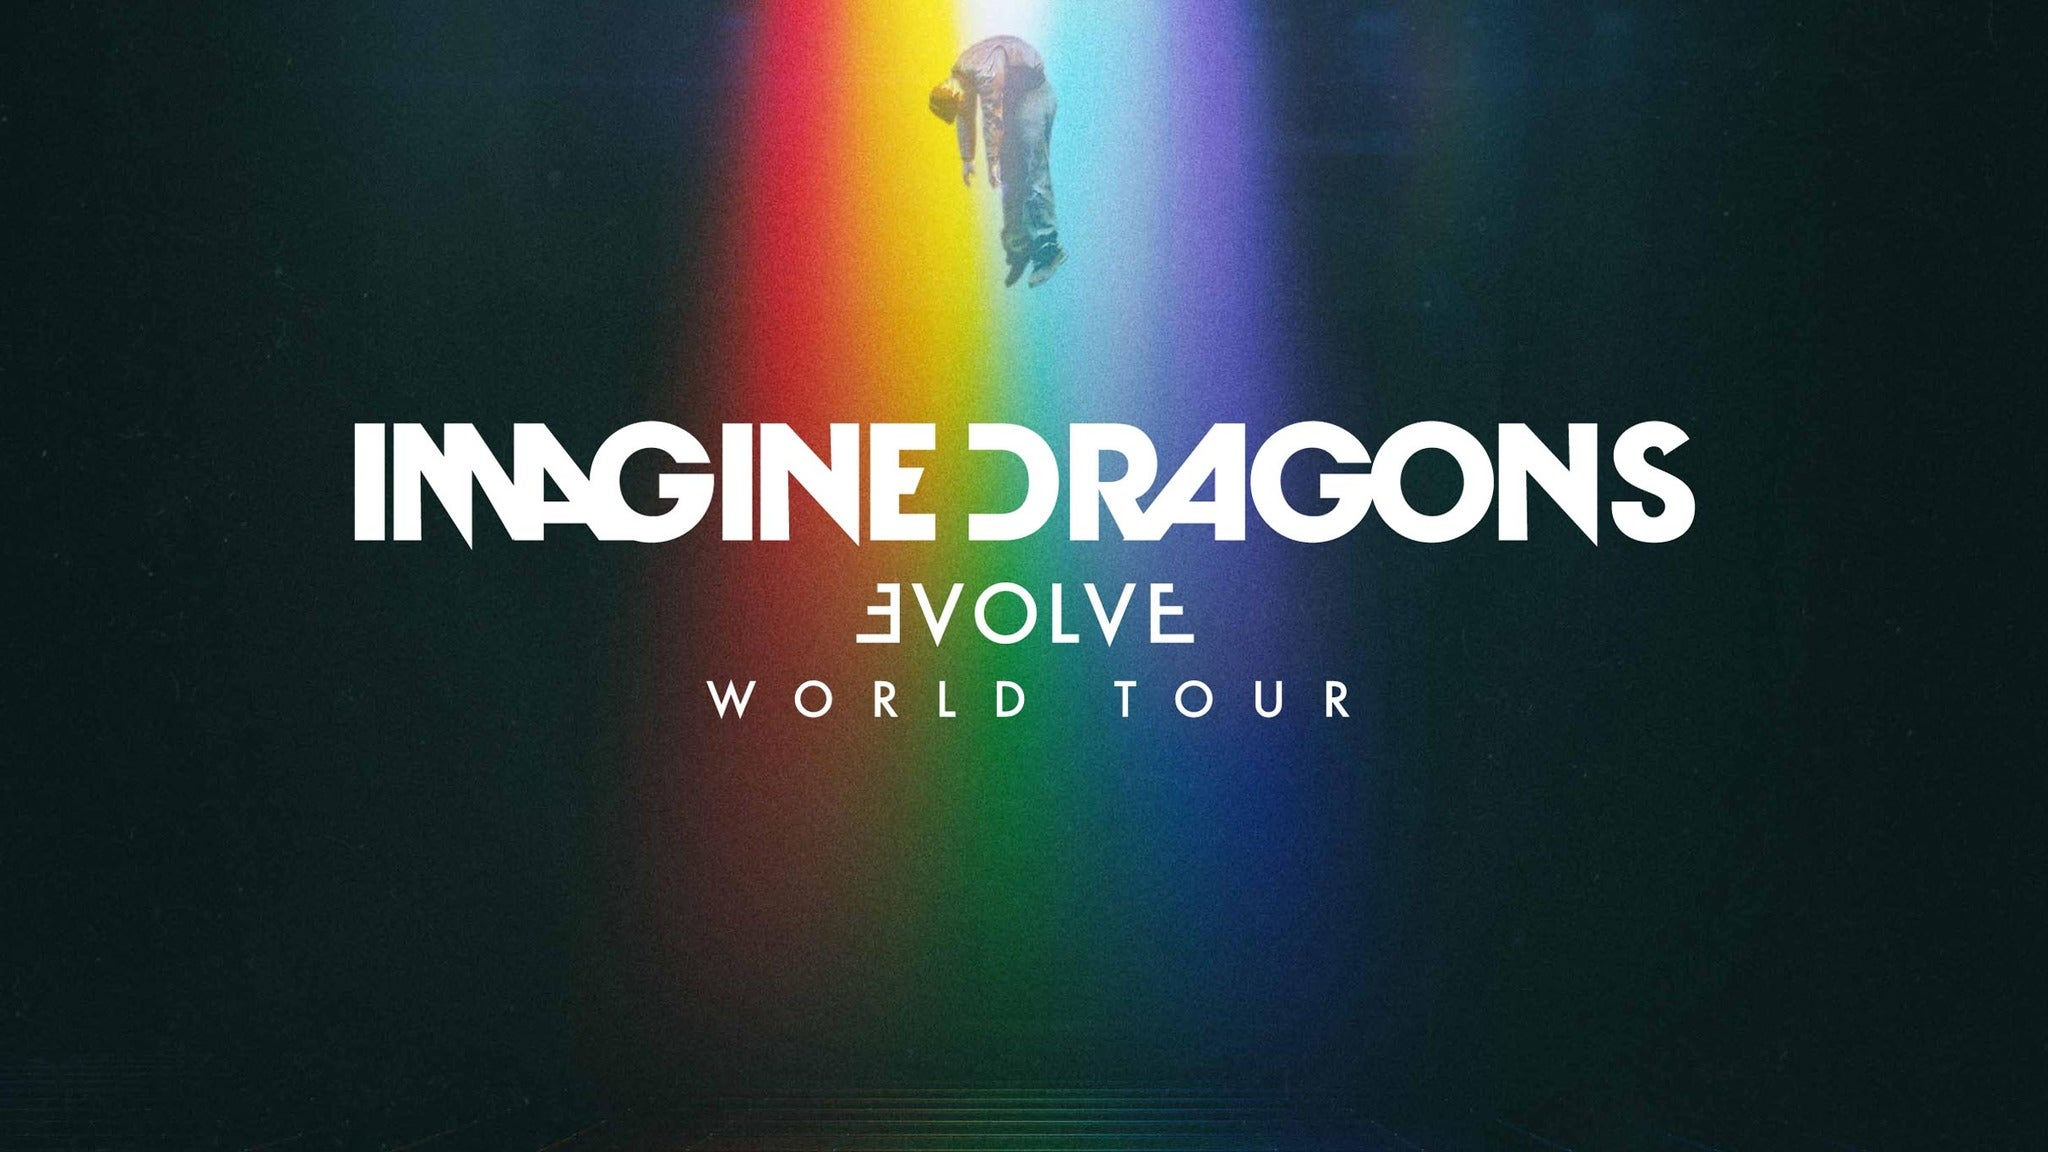 Imagine Dragons: EVOLVE TOUR at The Wharf Amphitheater